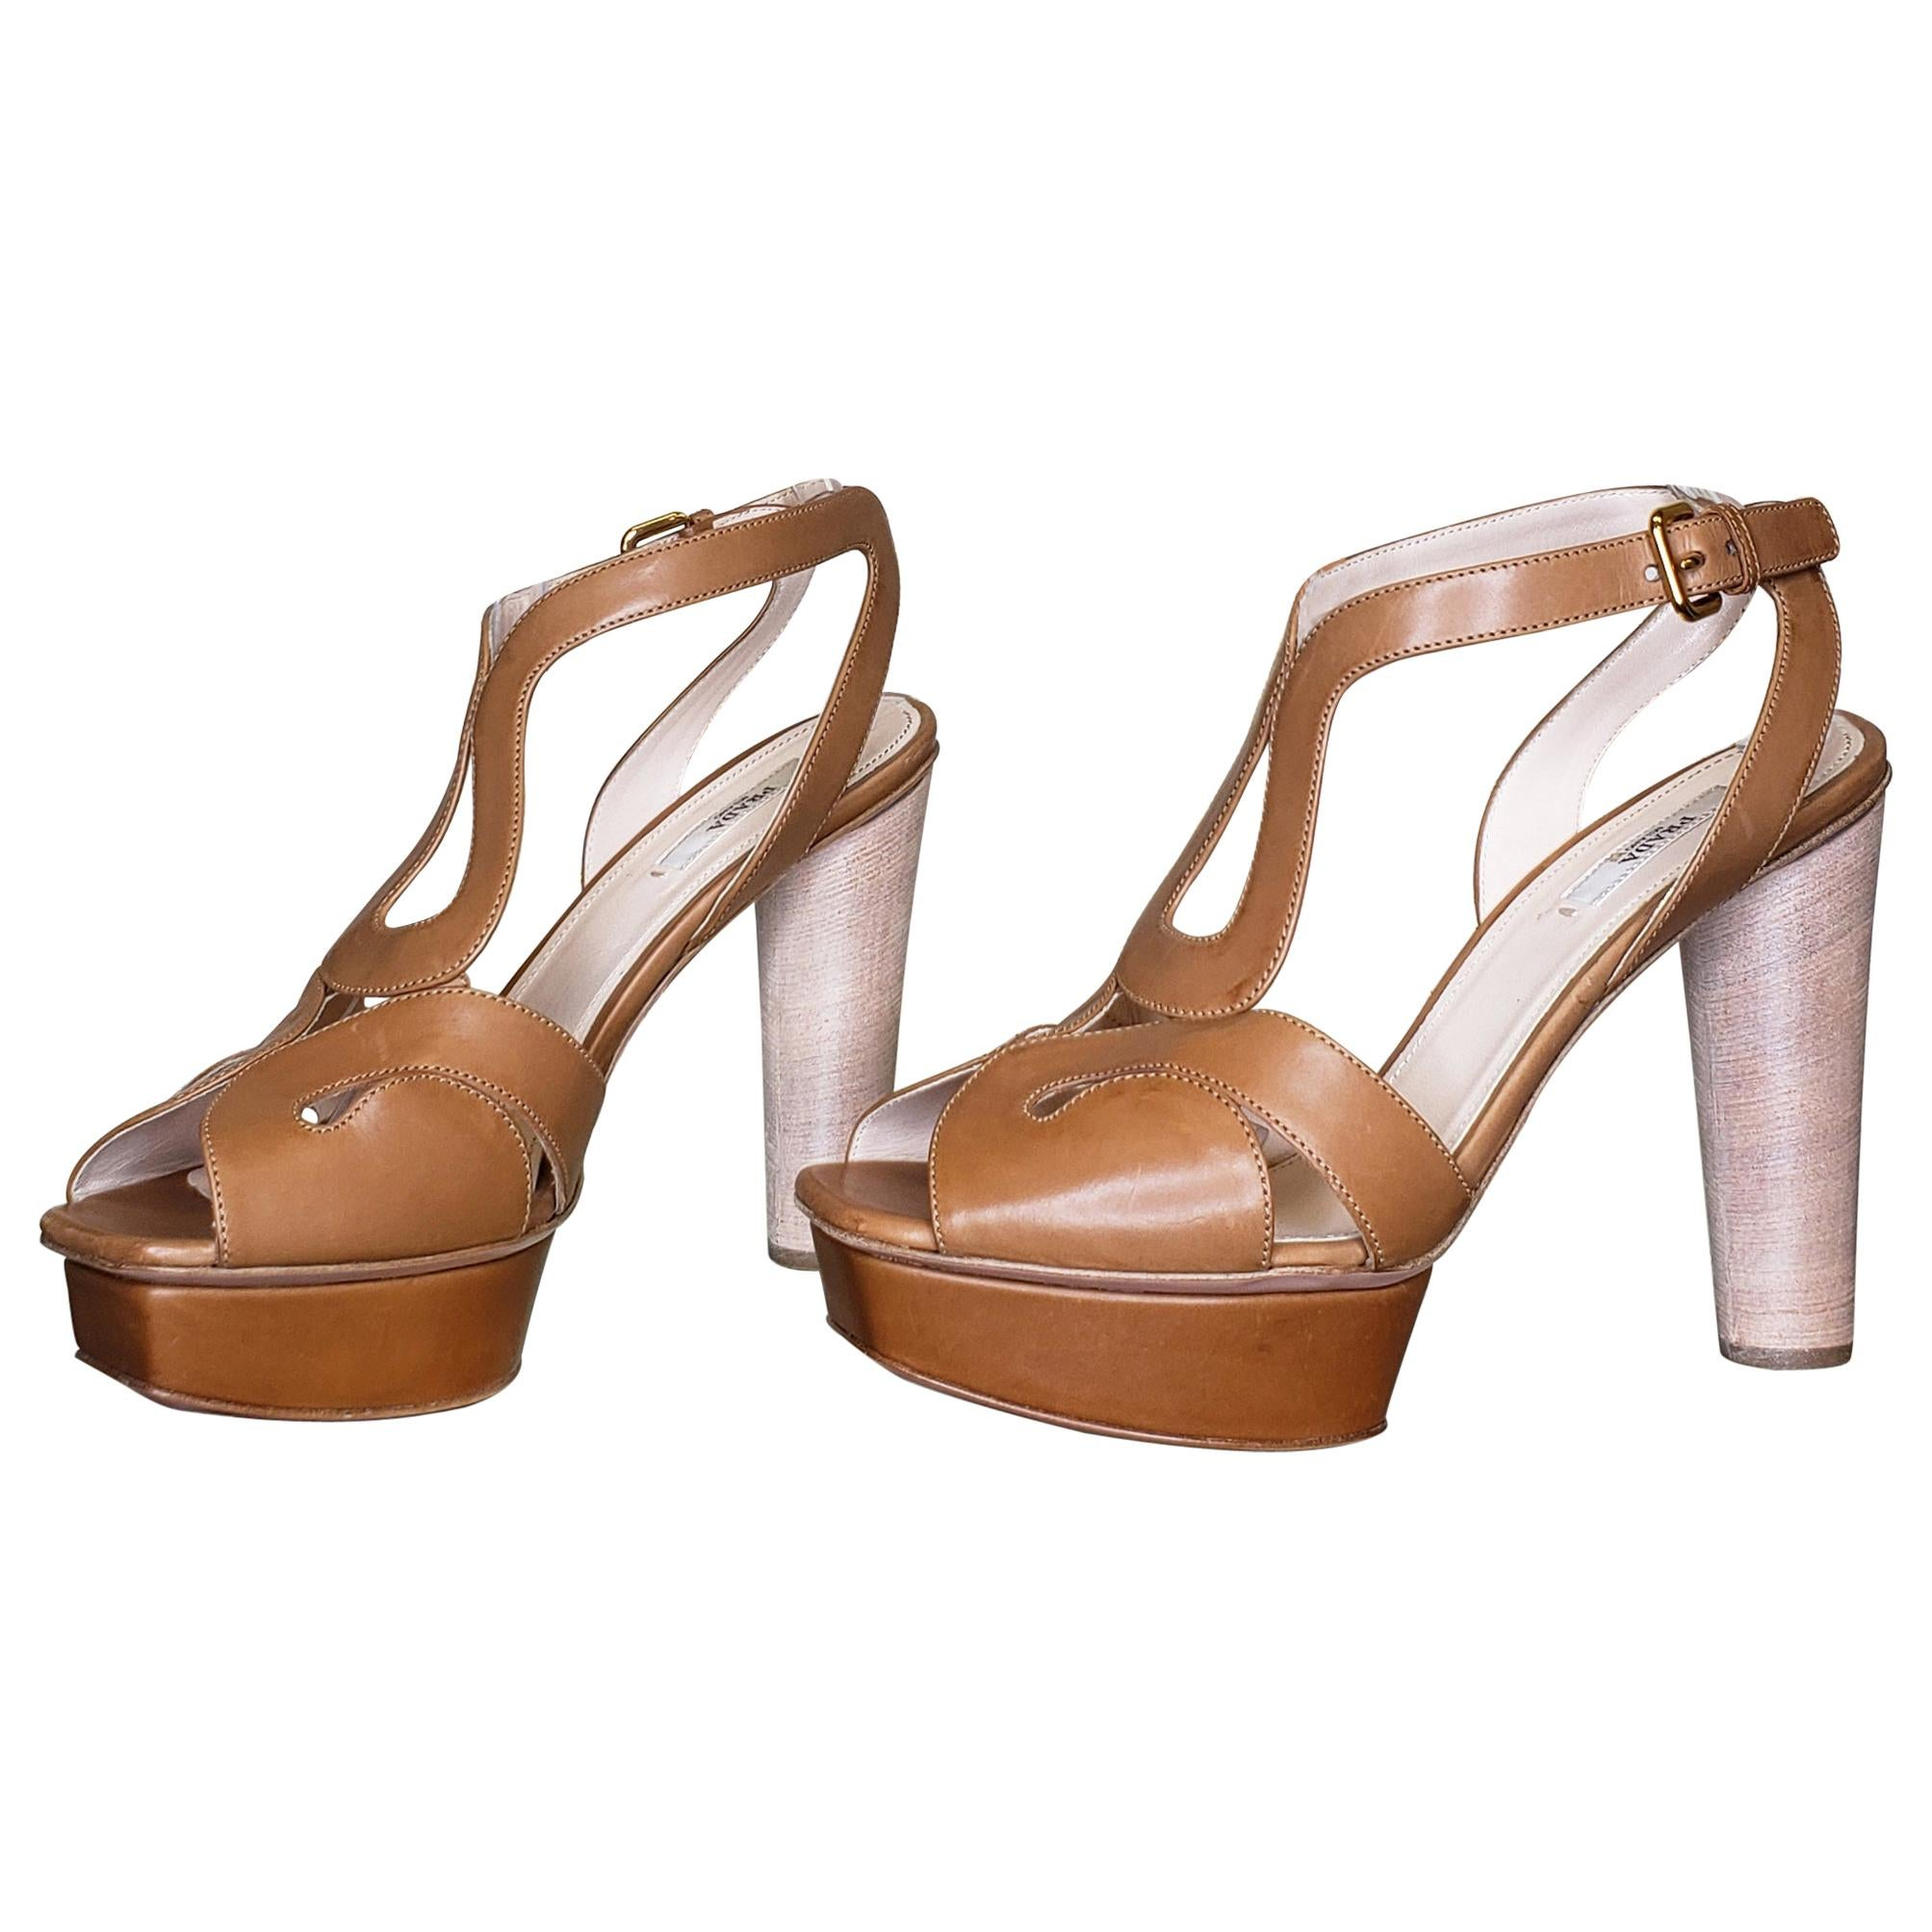 New PRADA LEATHER LIGHT BROWN PUMPS SANDALS SHOES 9.5 - 39.5